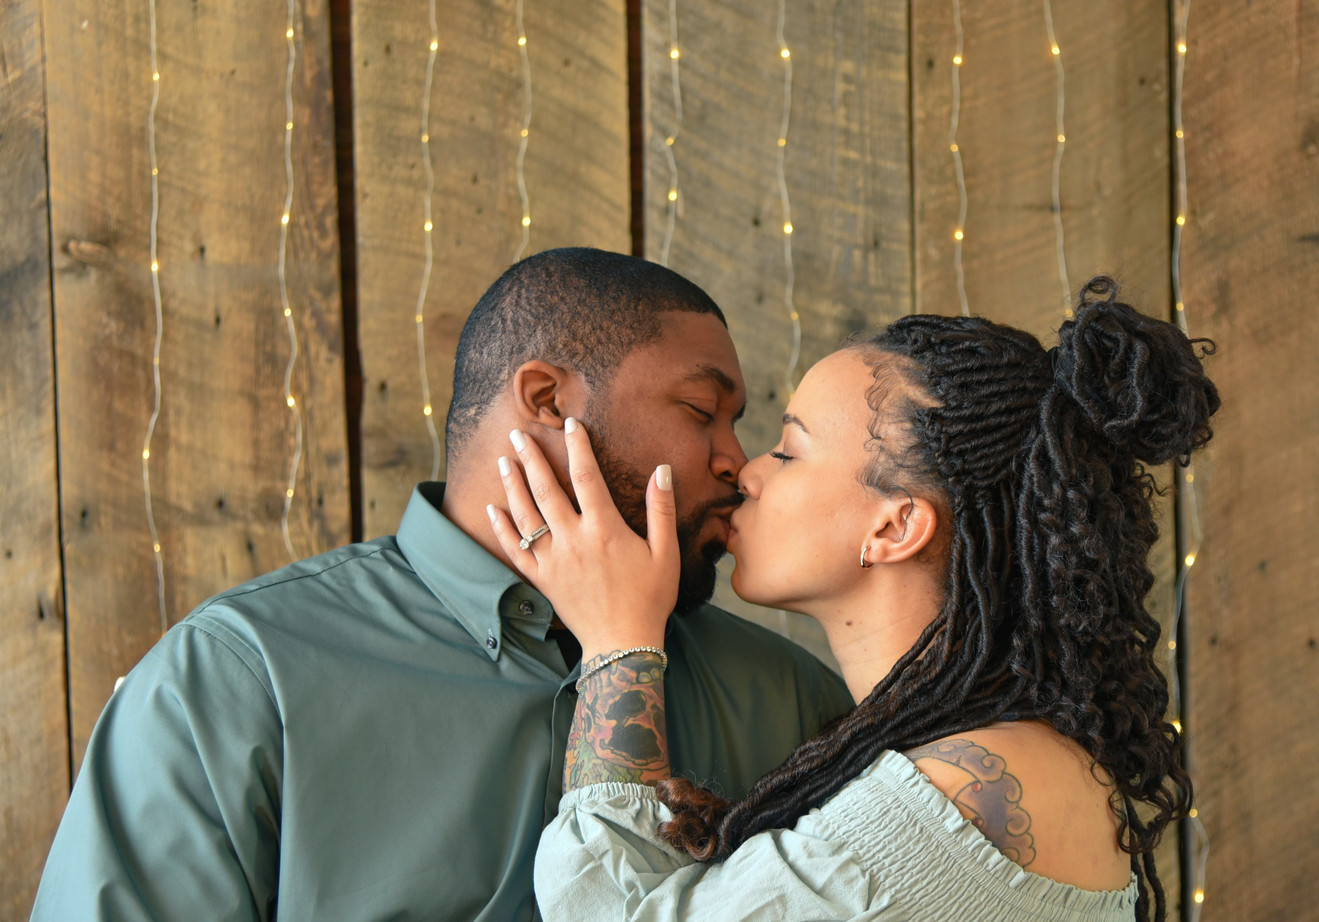 WillYouToWilliams_Engagement Pics-21.jpg